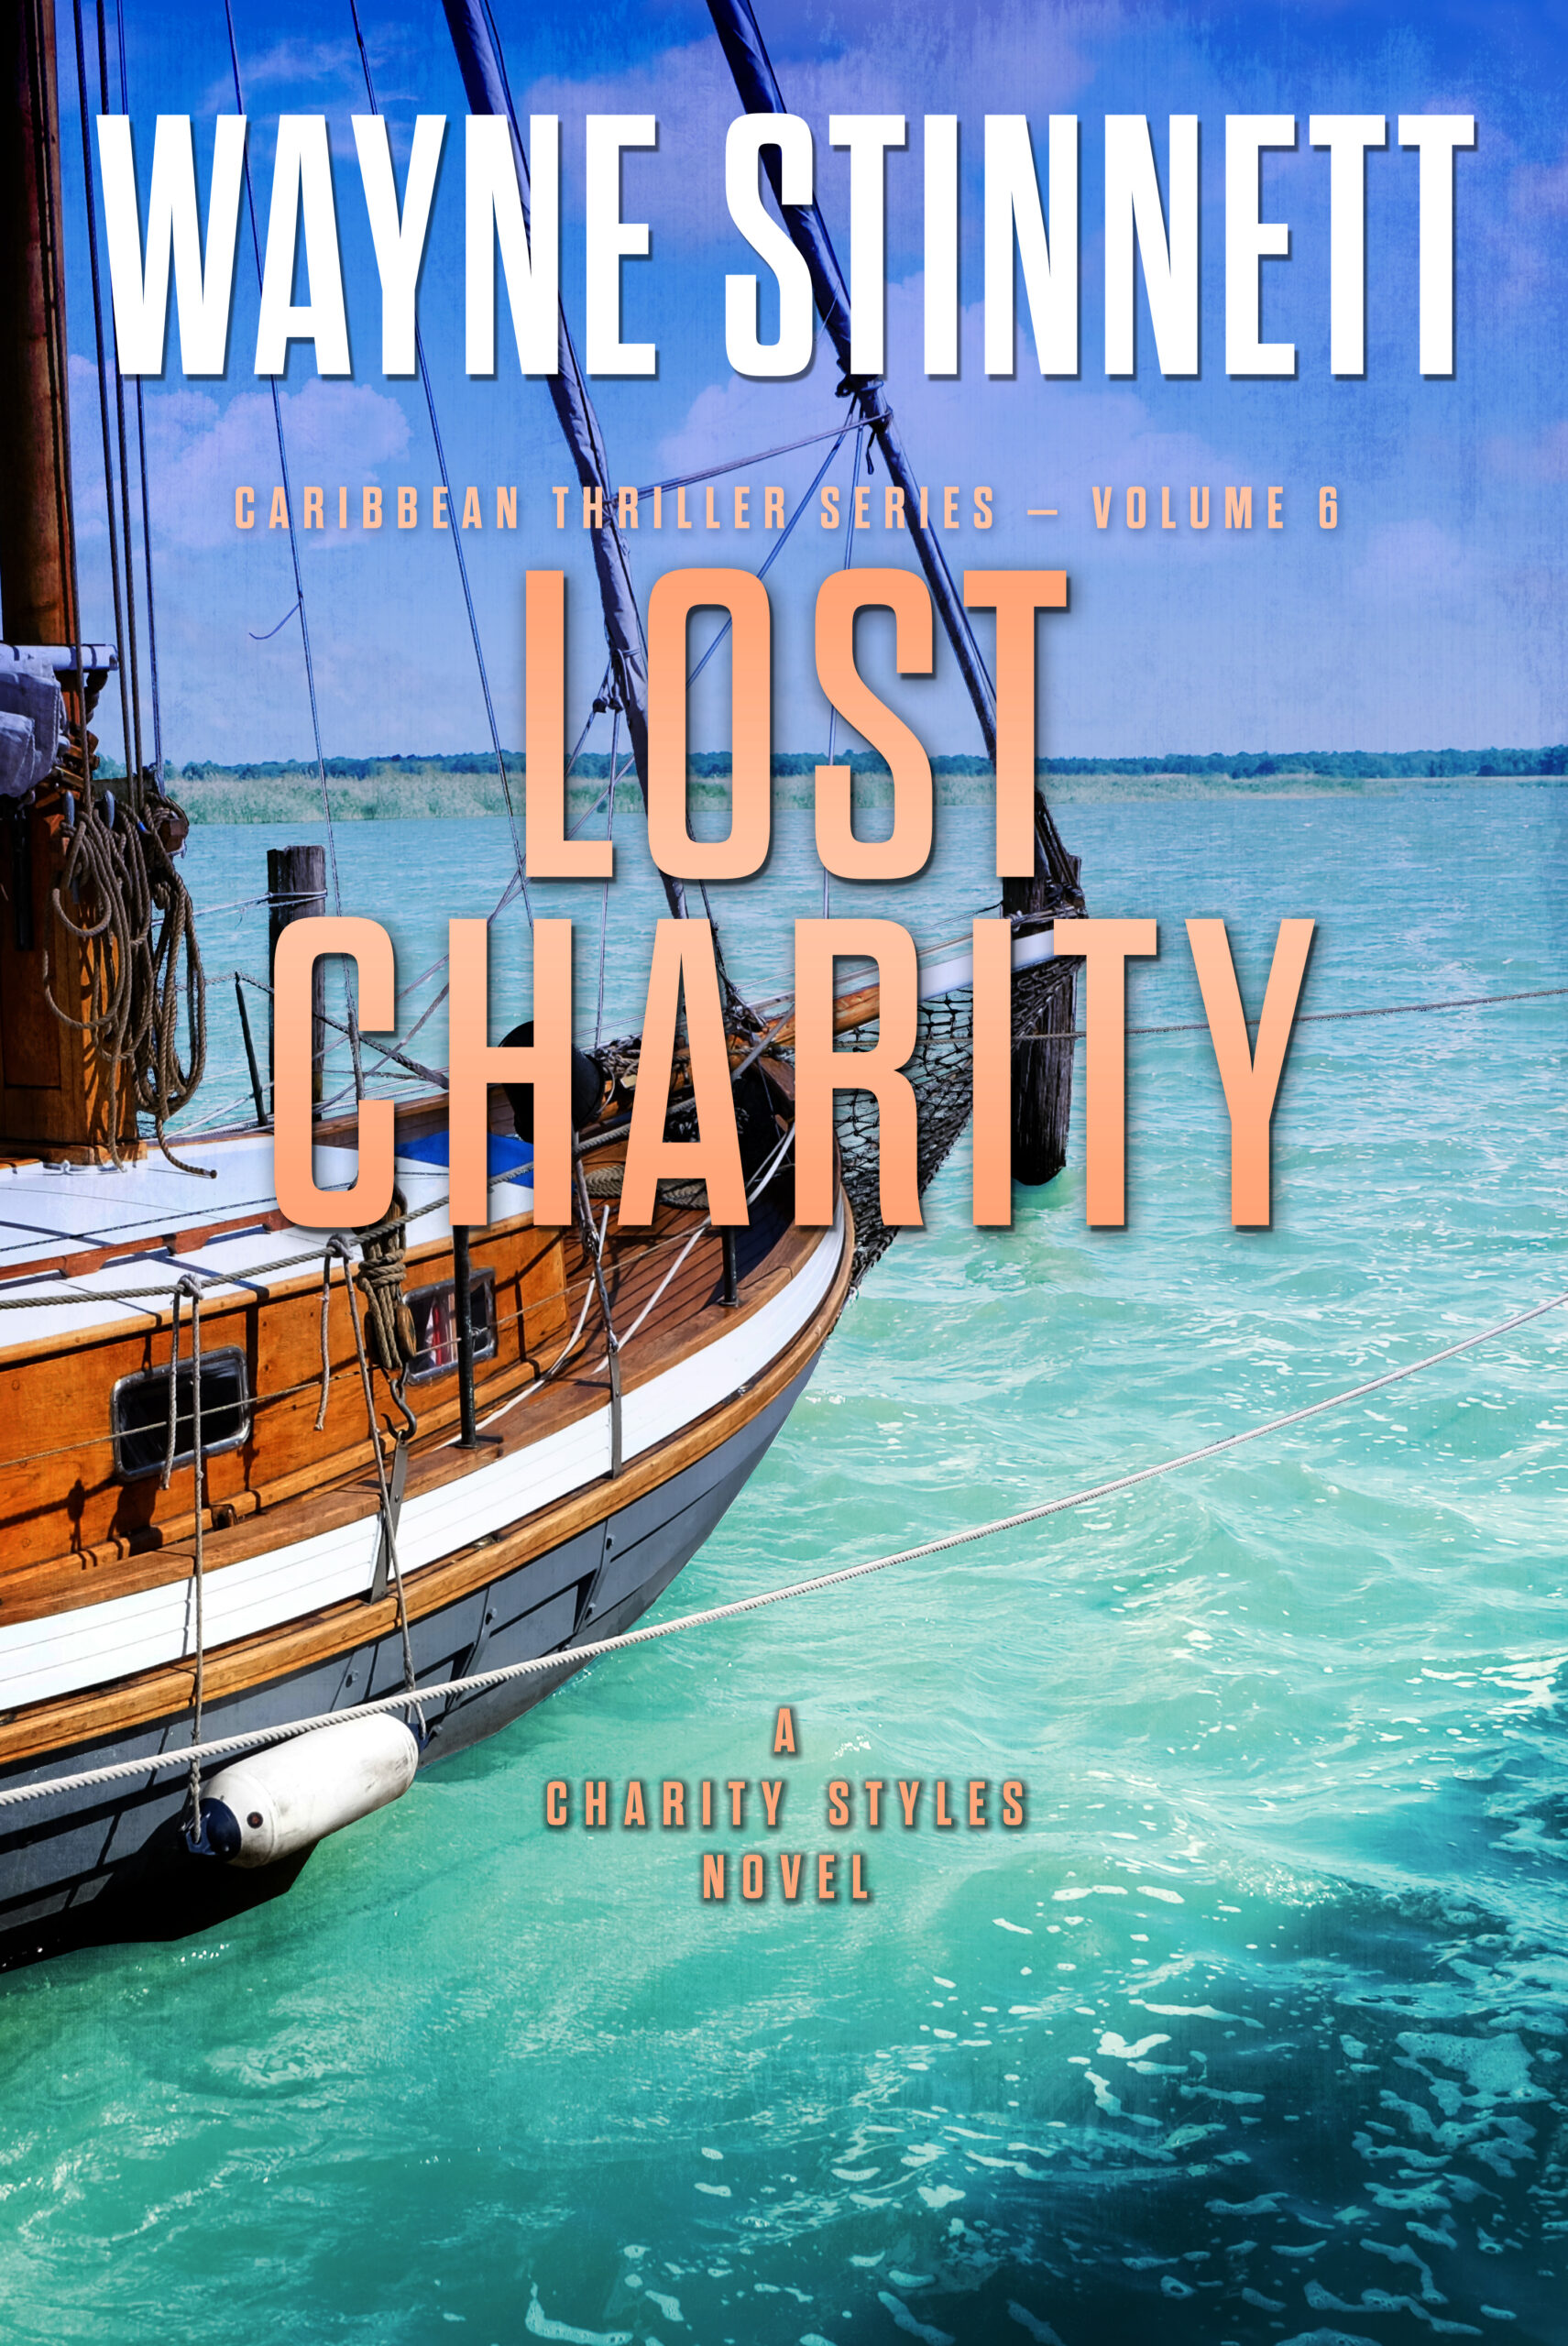 Book Cover of Lost Charity by Wayne Stinnett